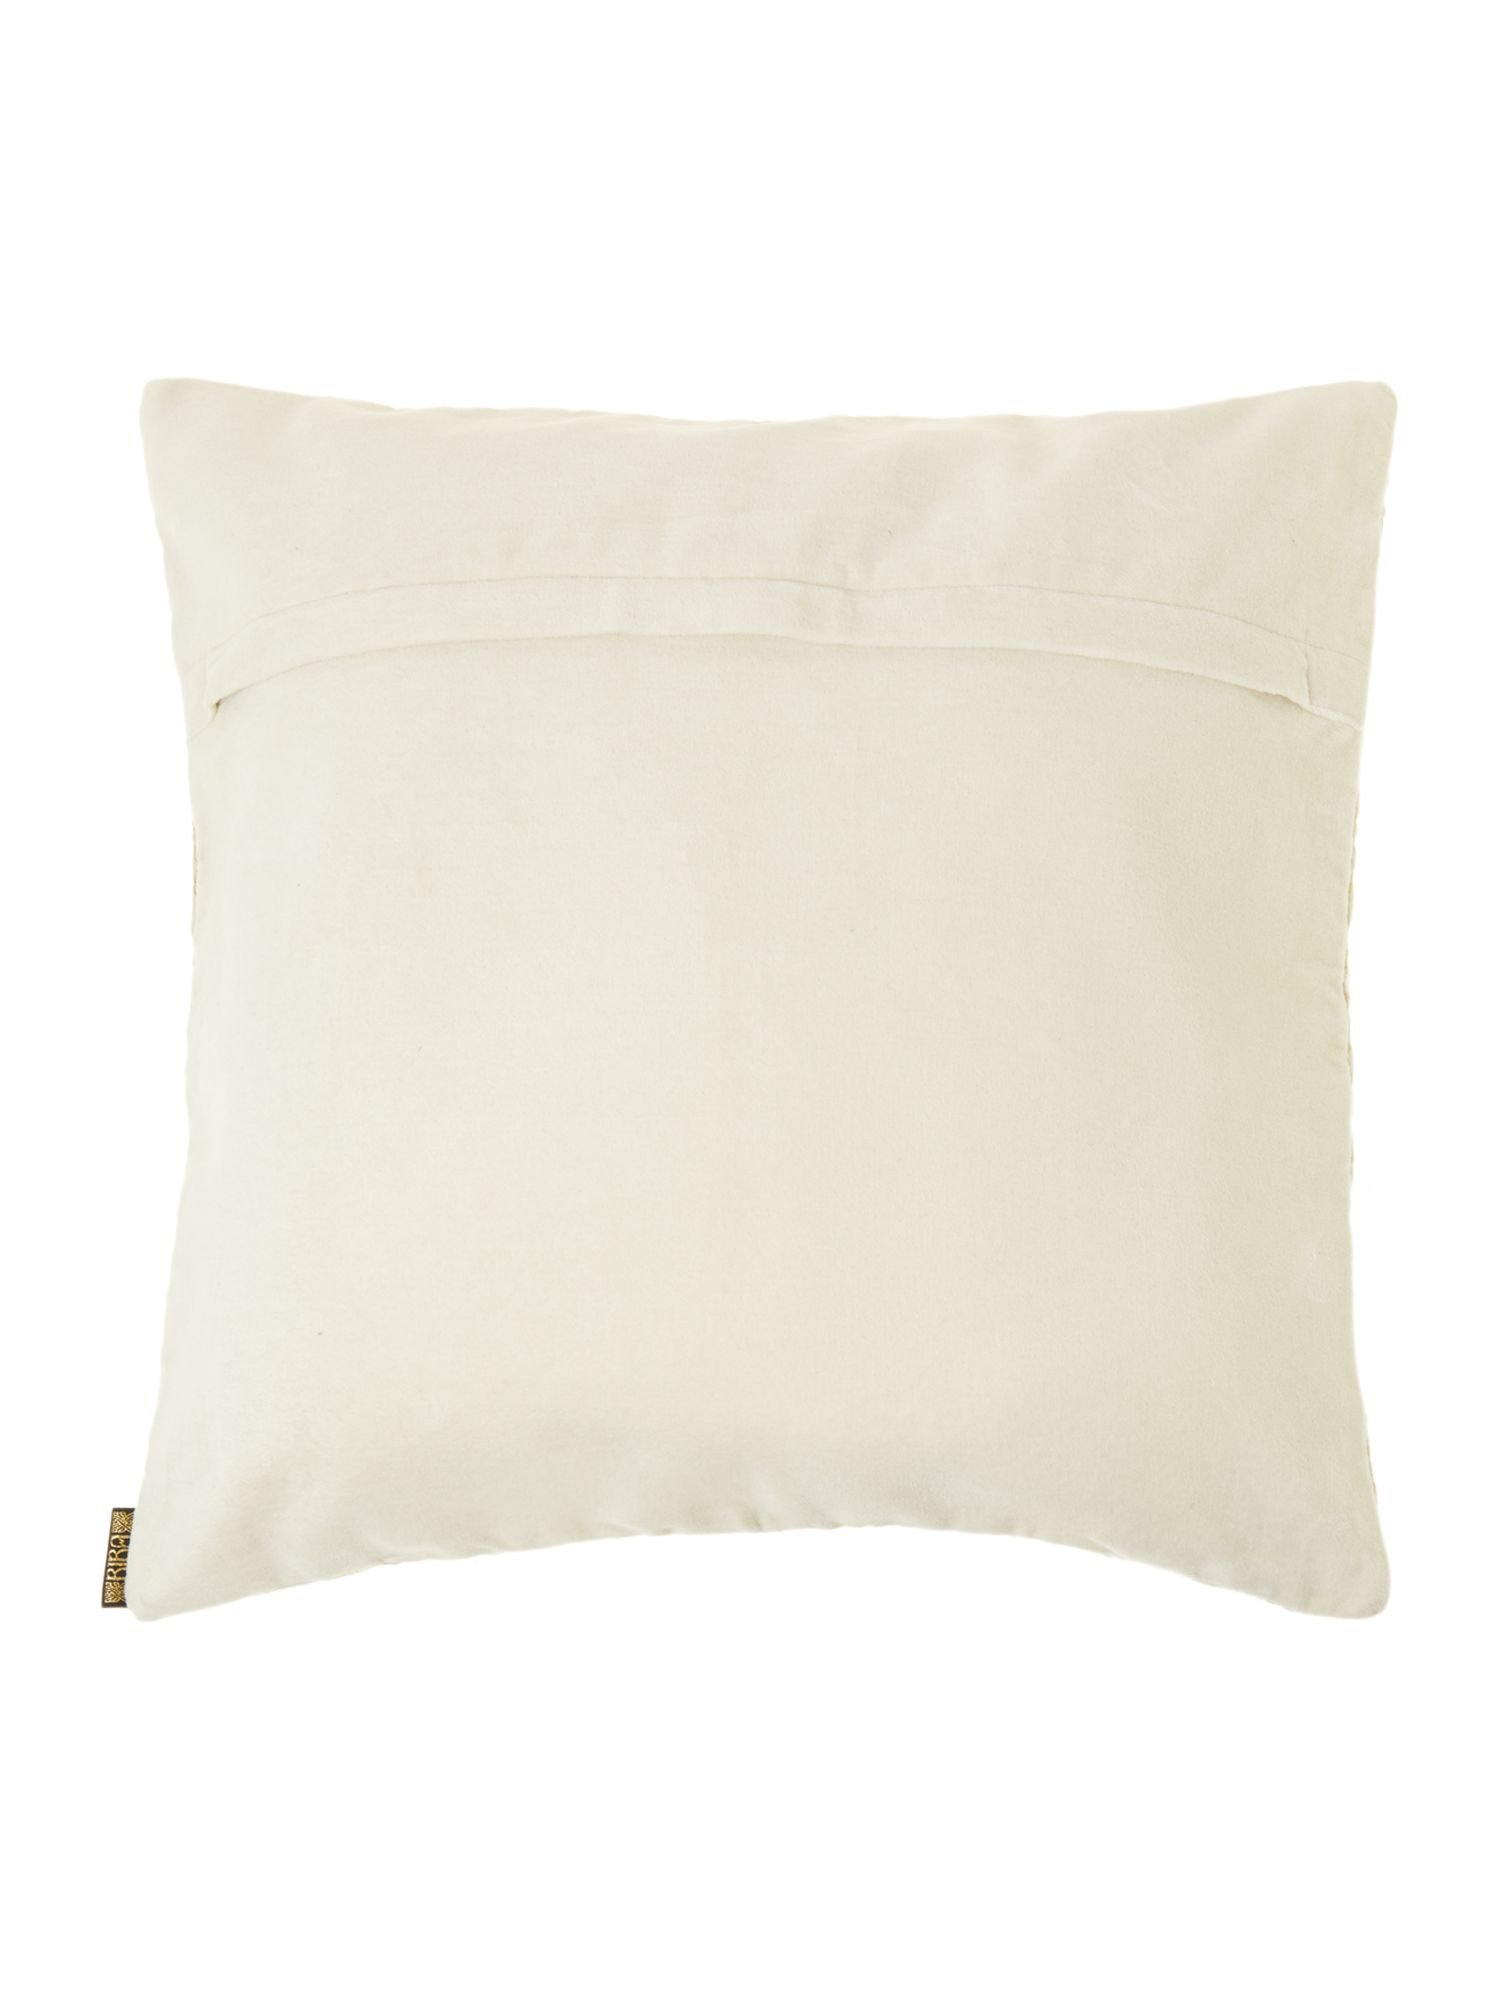 Cream velvet Biba design cushion